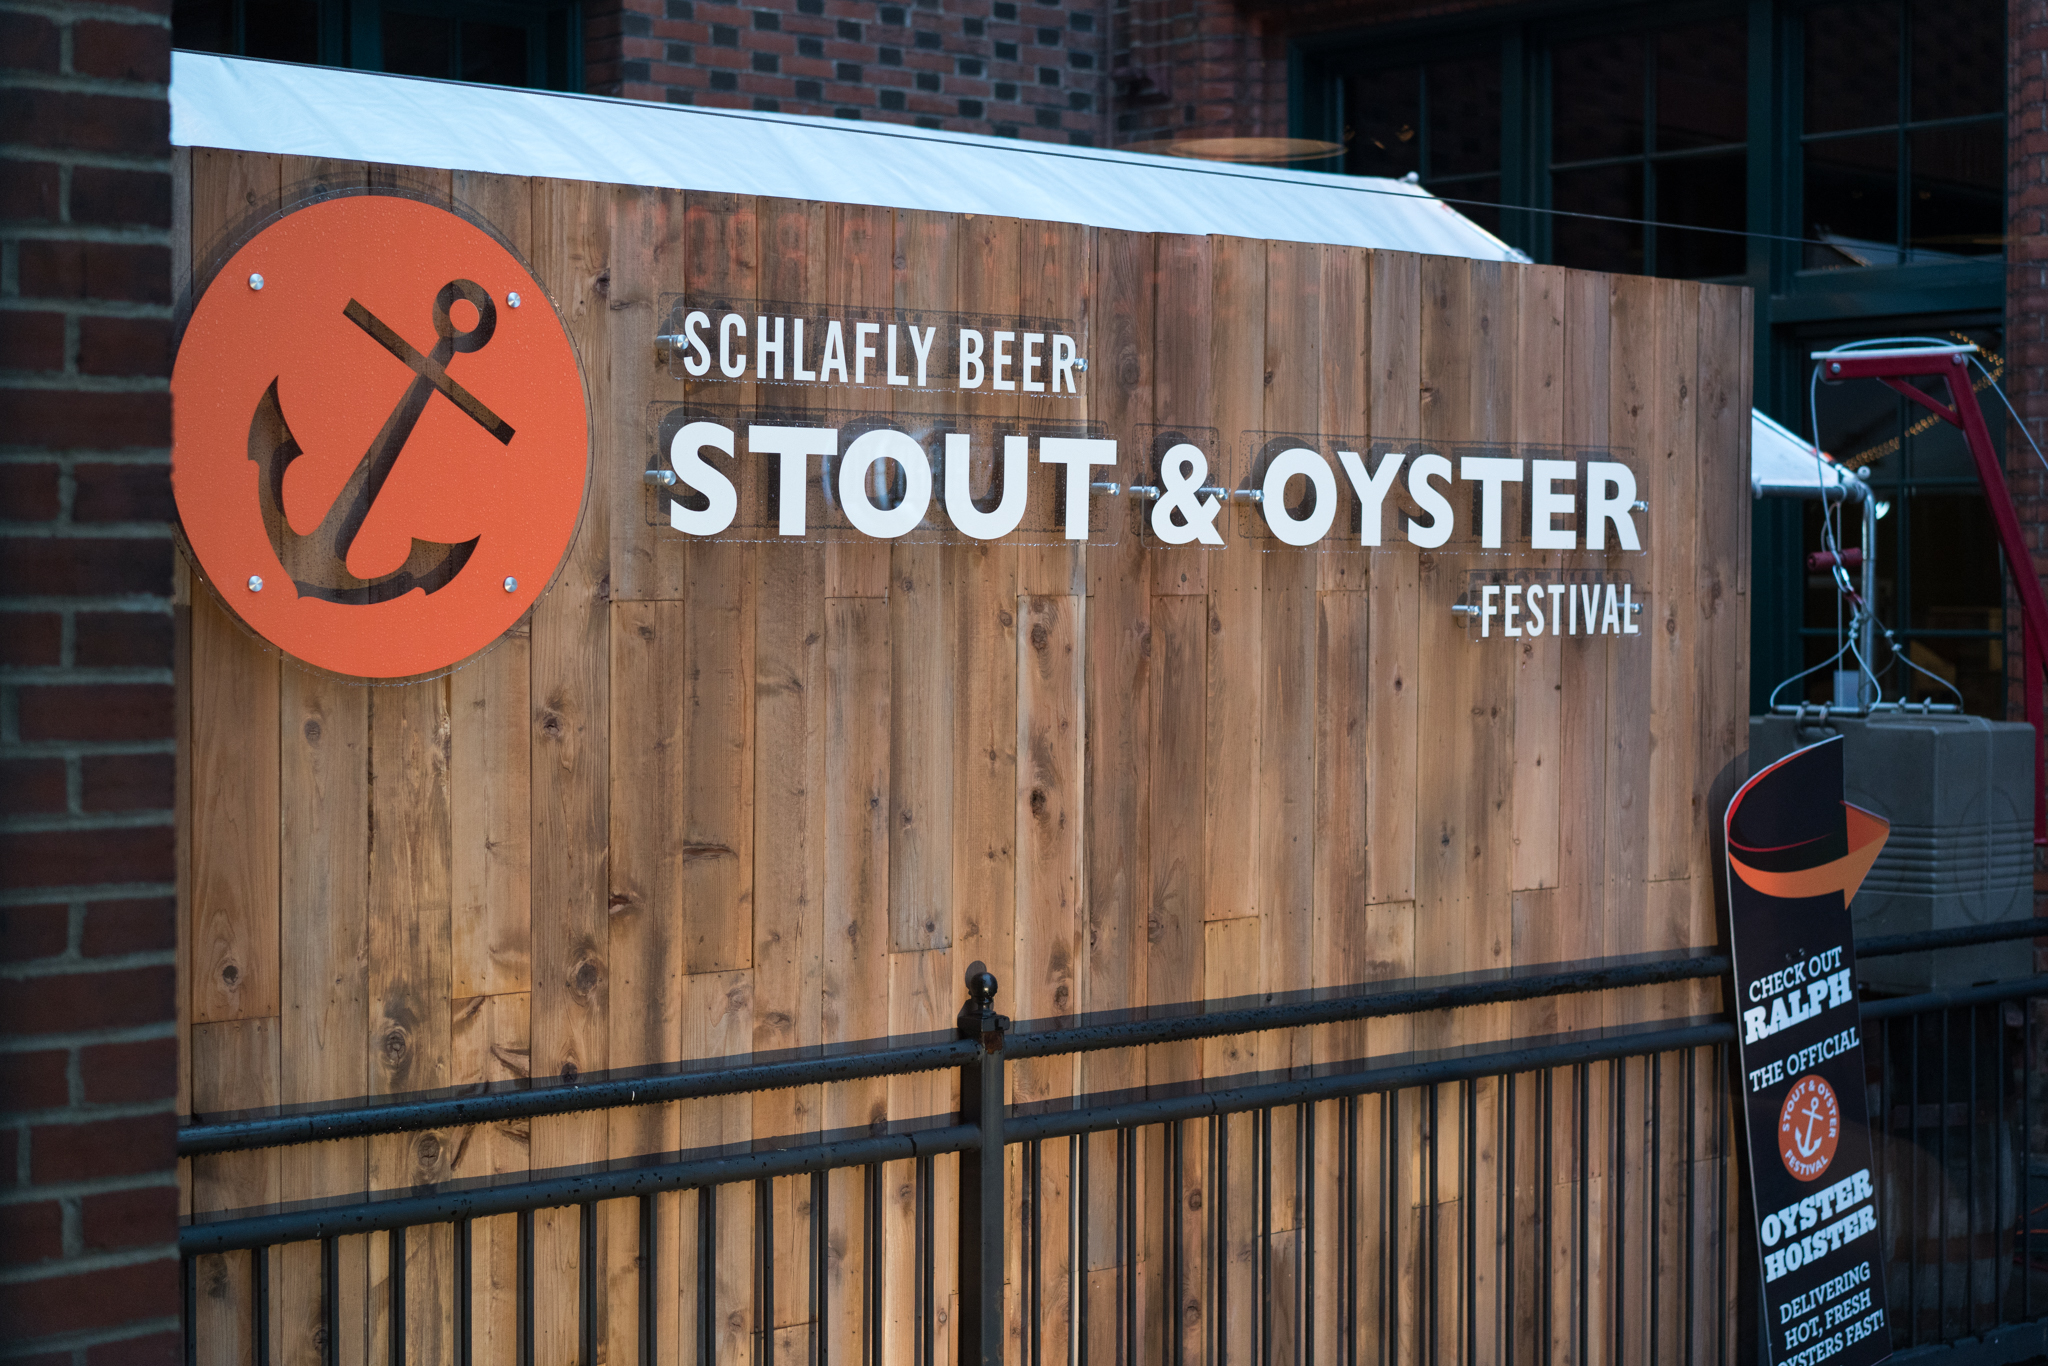 Schlafly's annual Stout & Oyster Festival, held each spring.